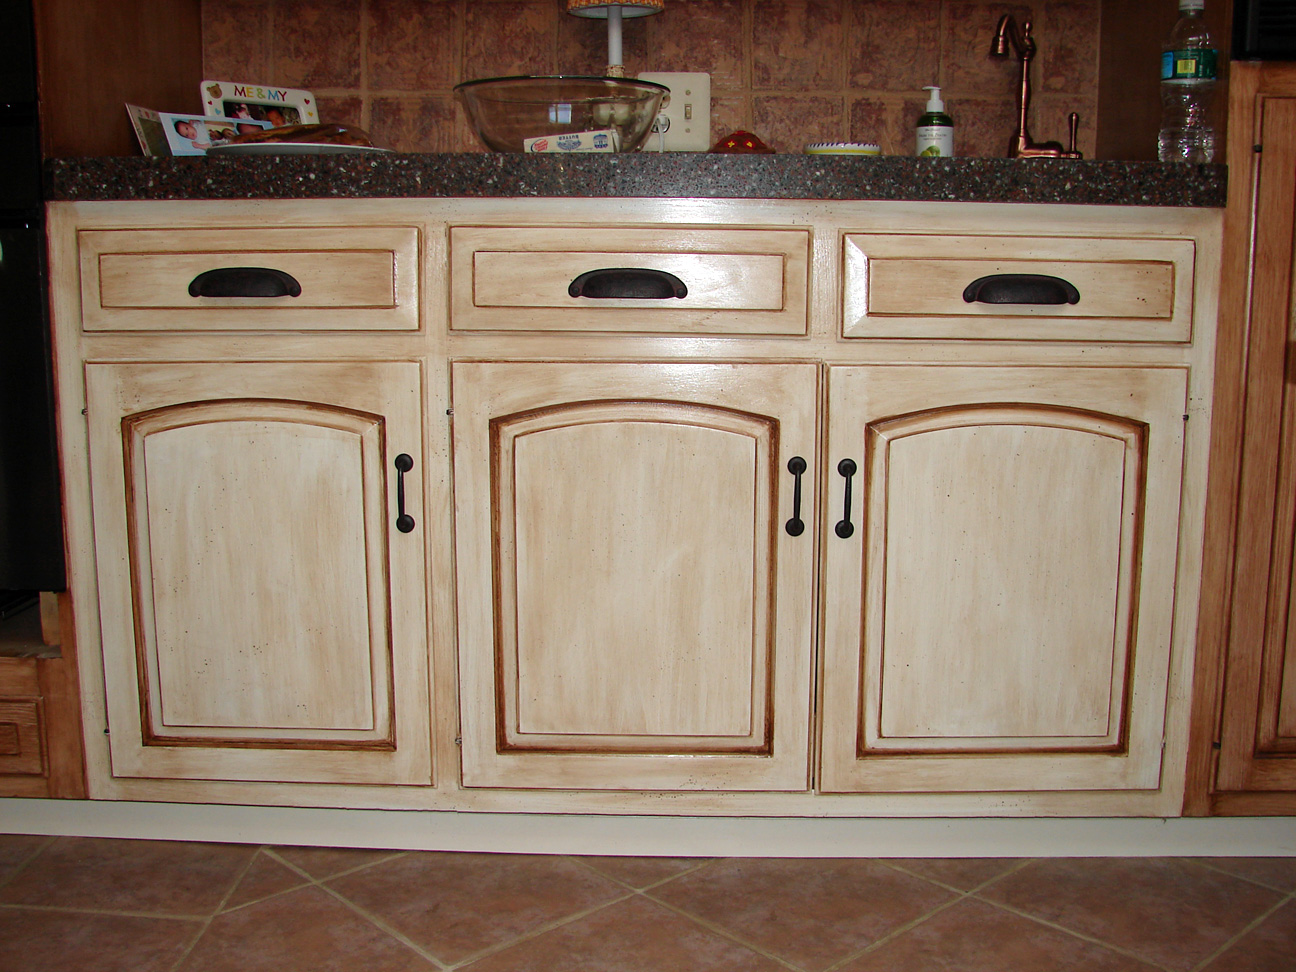 Decorative effect of walls furniture kitchen cabinets Redo my kitchen